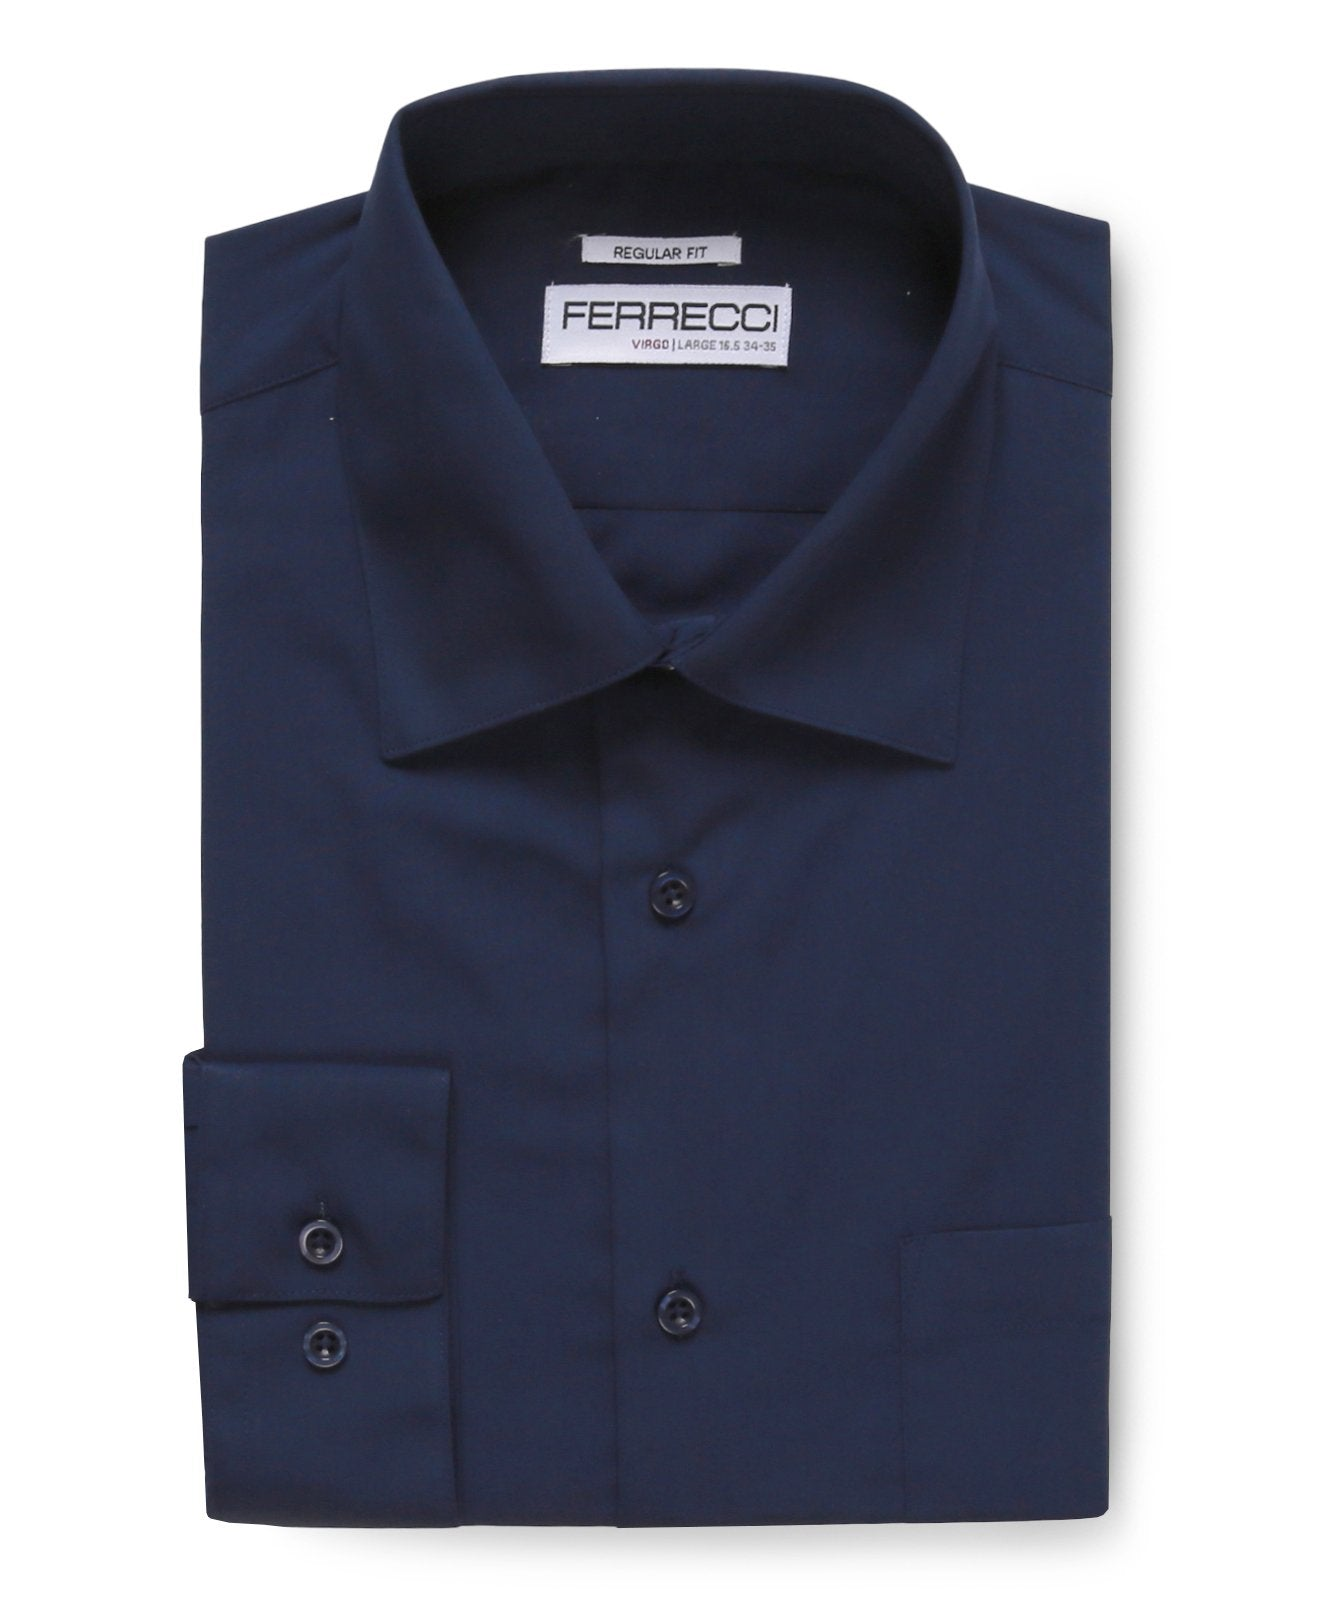 Virgo Navy Regular Fit Dress Shirt - Giorgio's Menswear